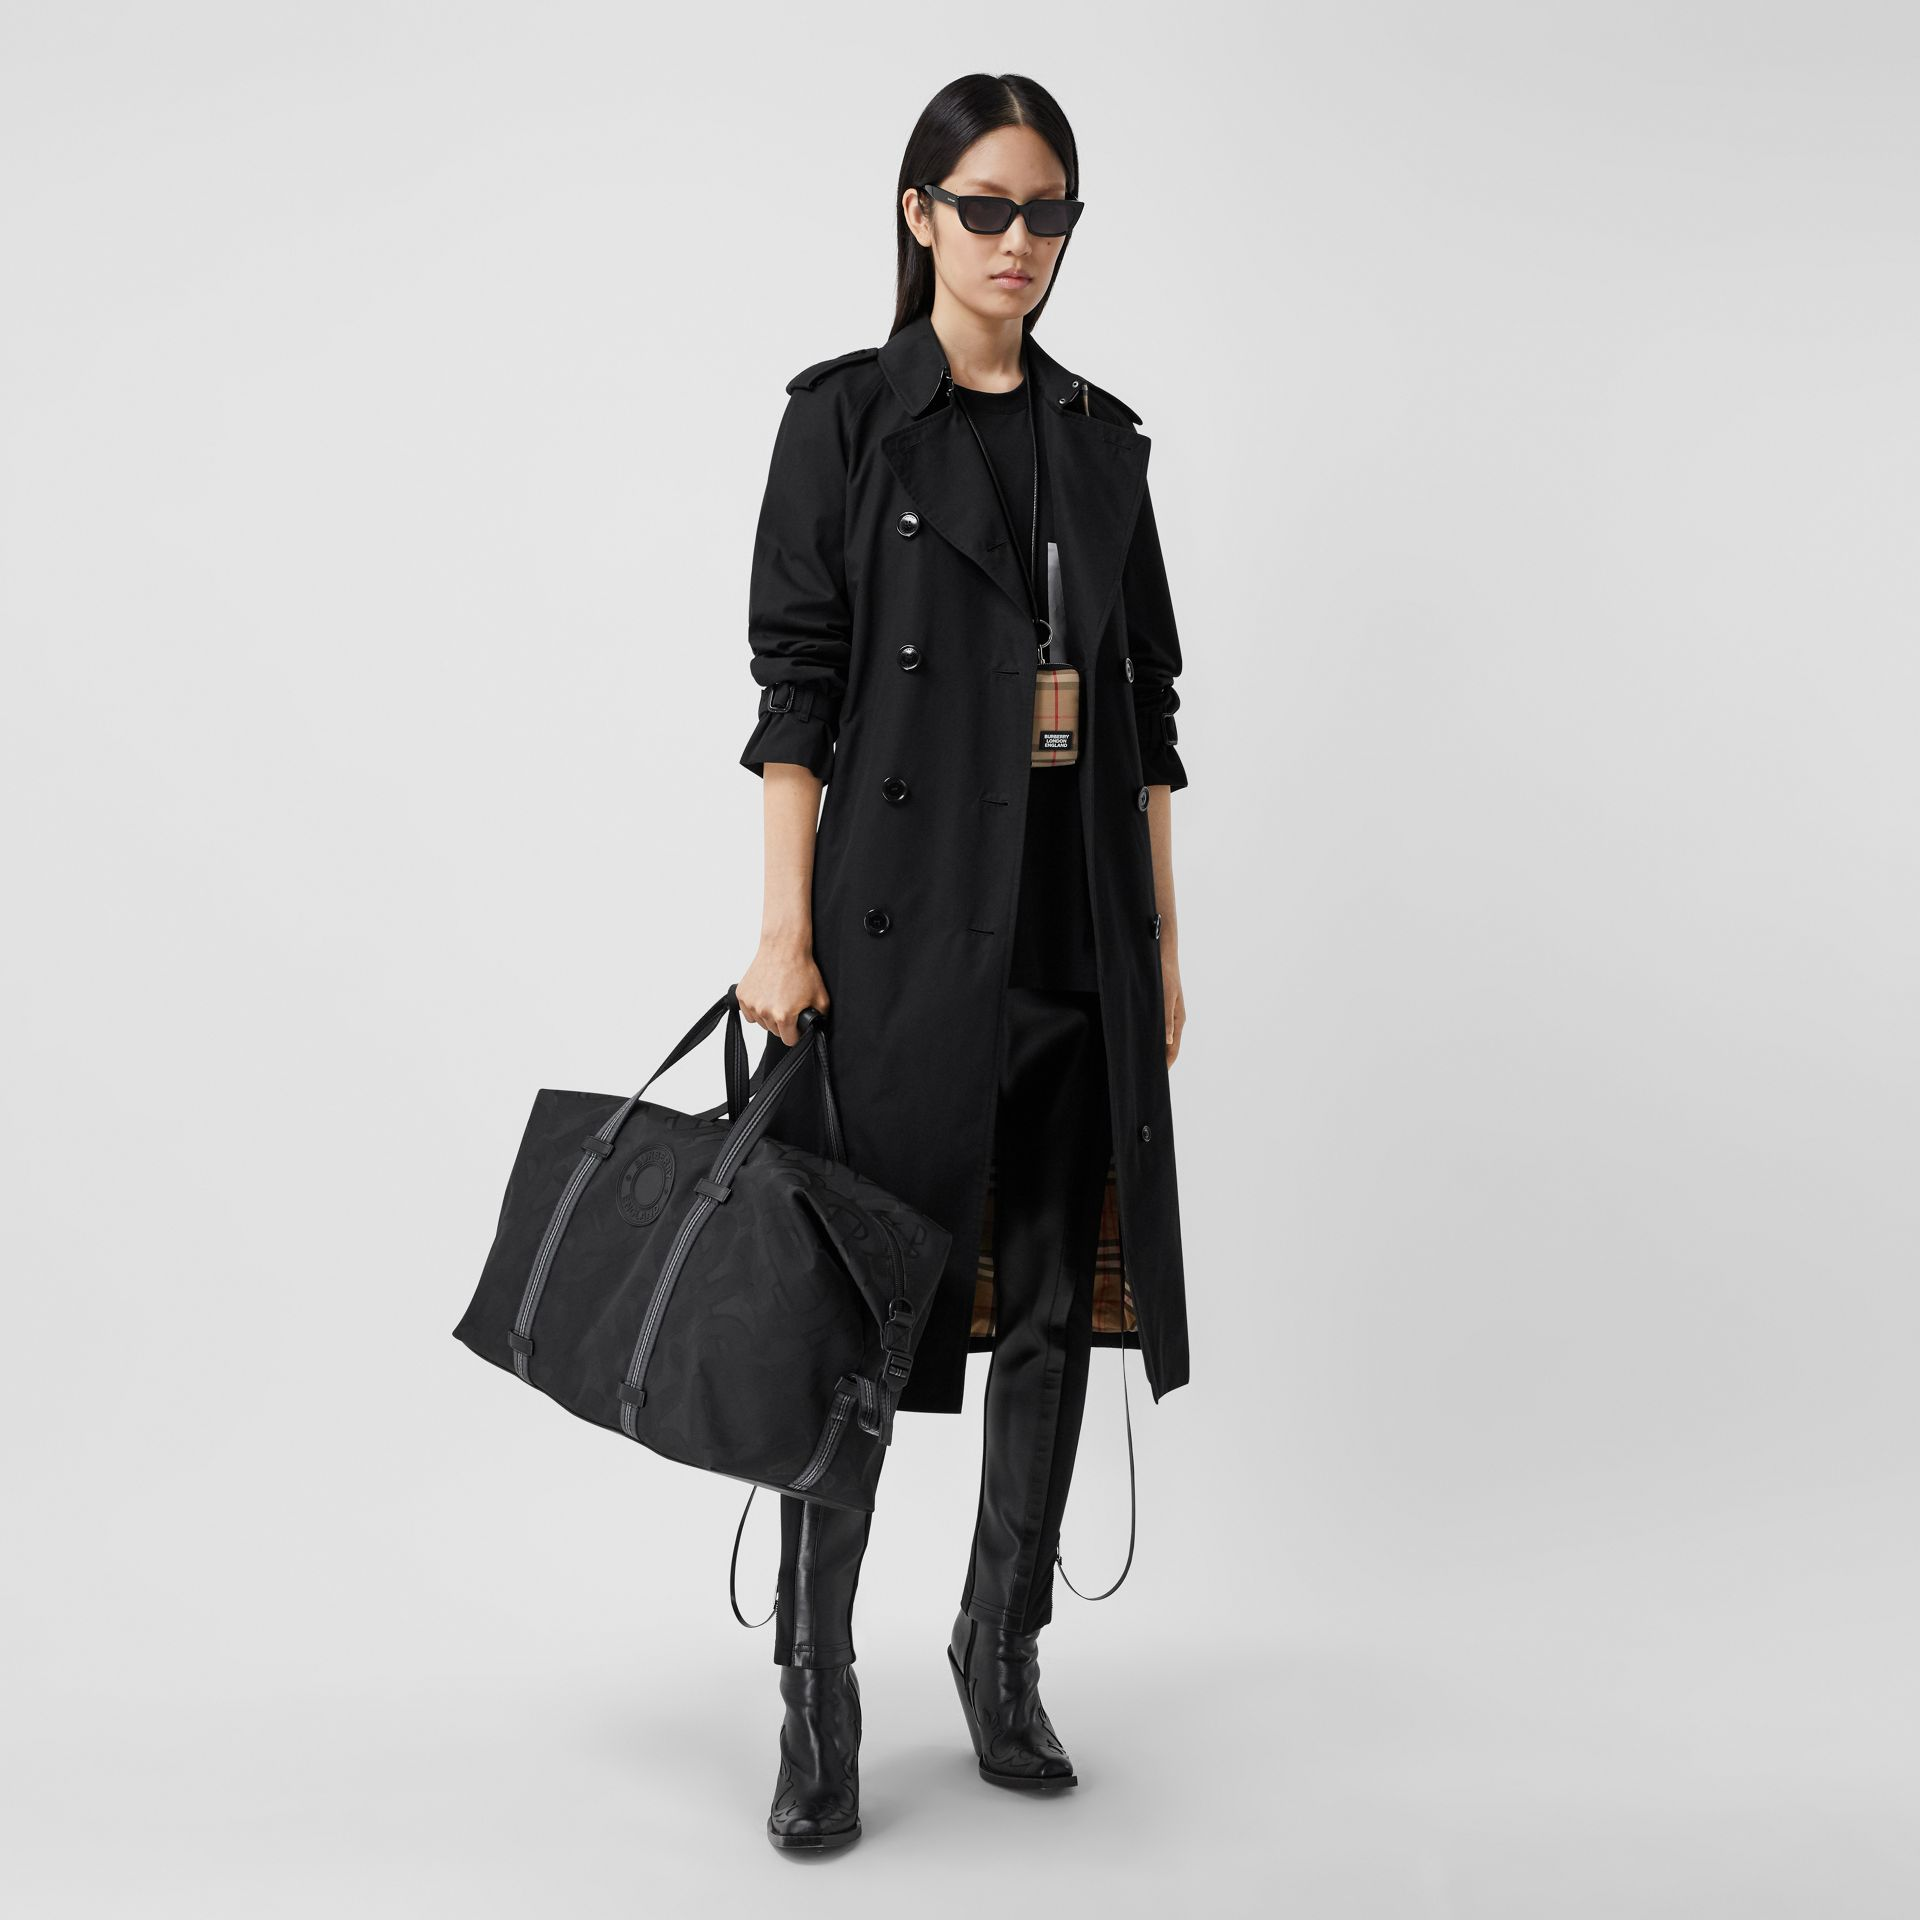 Langer Heritage-Trenchcoat in Waterloo-Passform (Schwarz) - Damen | Burberry - Galerie-Bild 0